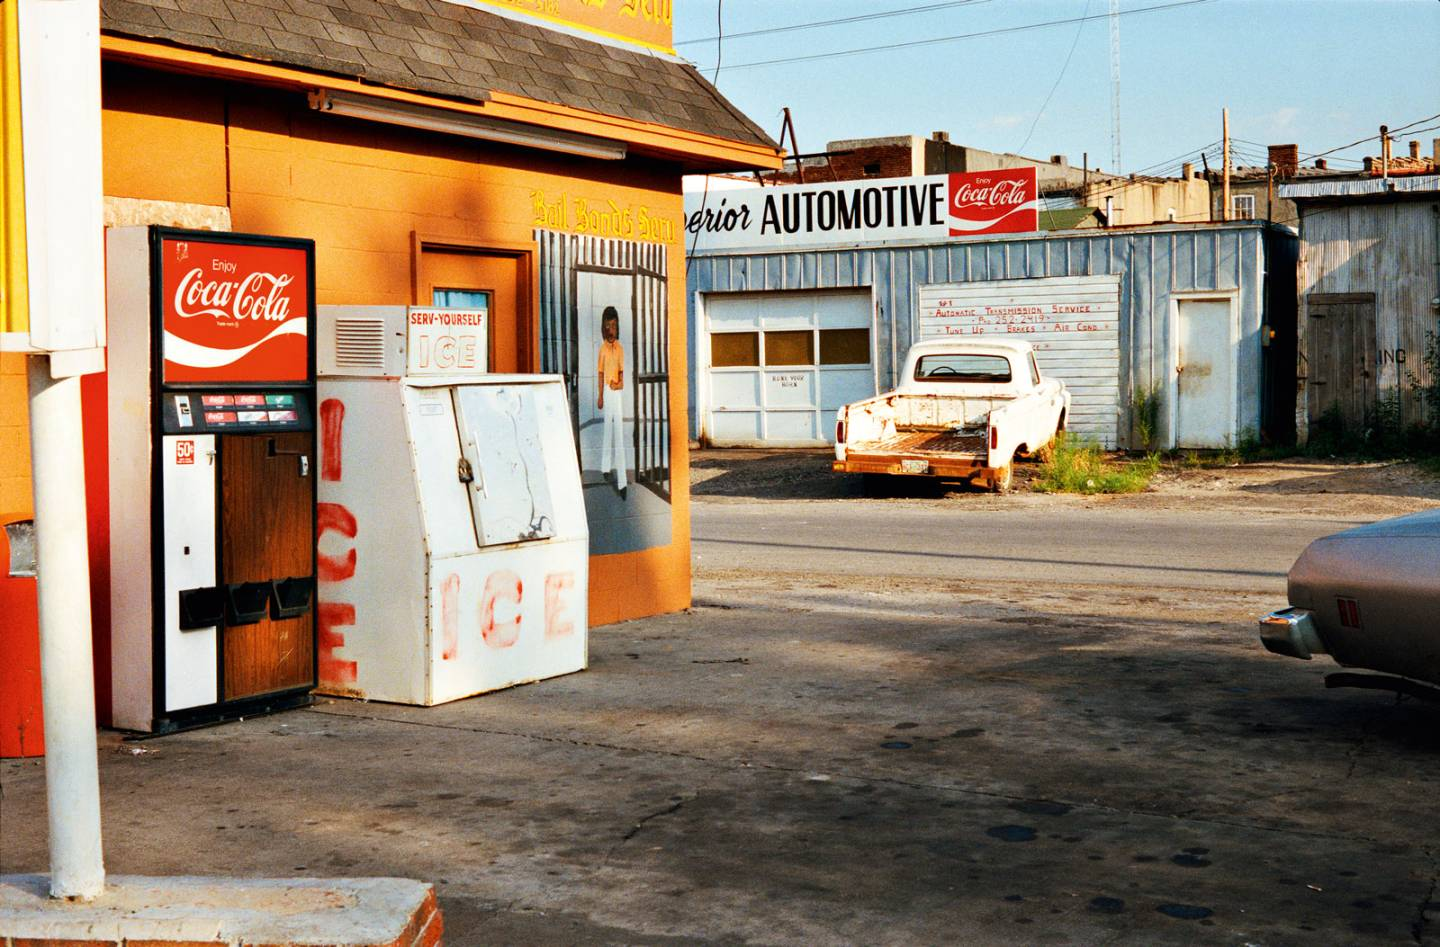 William Eggleston station service